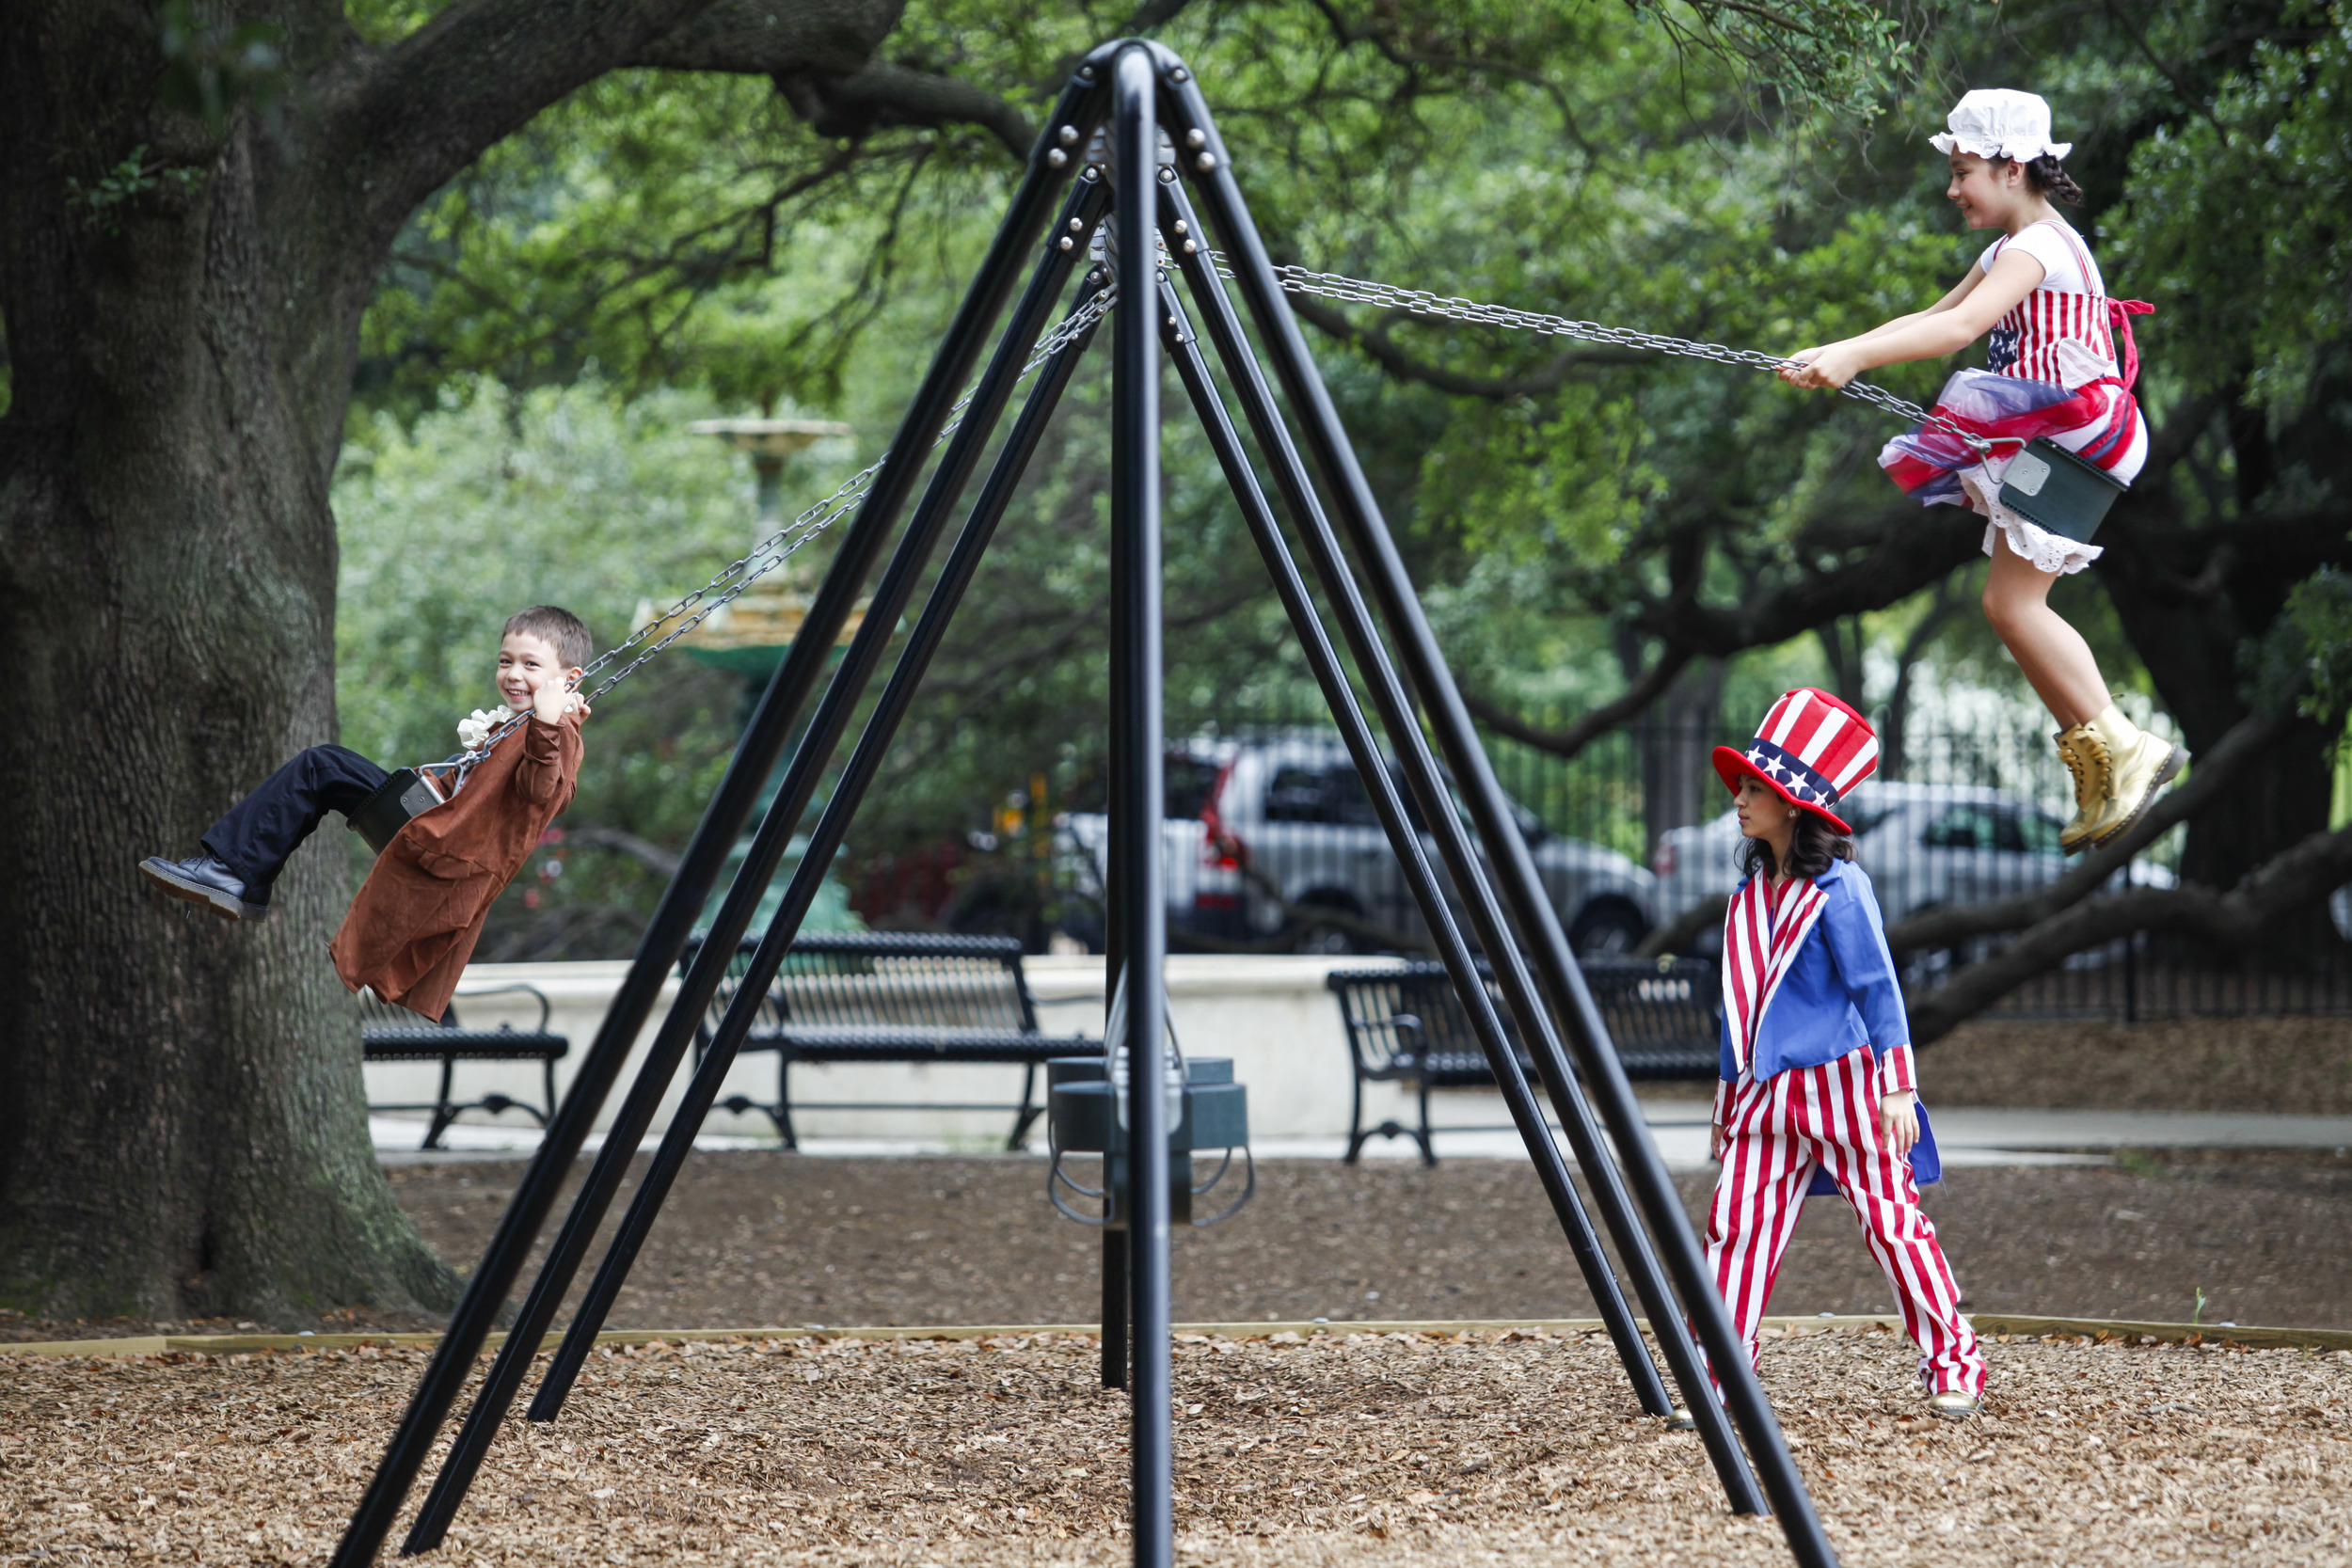 """""""Reece Tanig, 6, left, Bianca Bolanos, 10, and Kaylee Tanig, 9 — dressed as Benjamin Franklin, Uncle Sam and Betsy Ross — hit the swi  ngs Monday at Sam Houston Park after helping Mayor Annise Parker unveil plans for Houston's official Fourth of July celebration, Southwest Airlines Freedom Over Texas, which will include fireworks and a performance by Jennifer Nettles."""""""